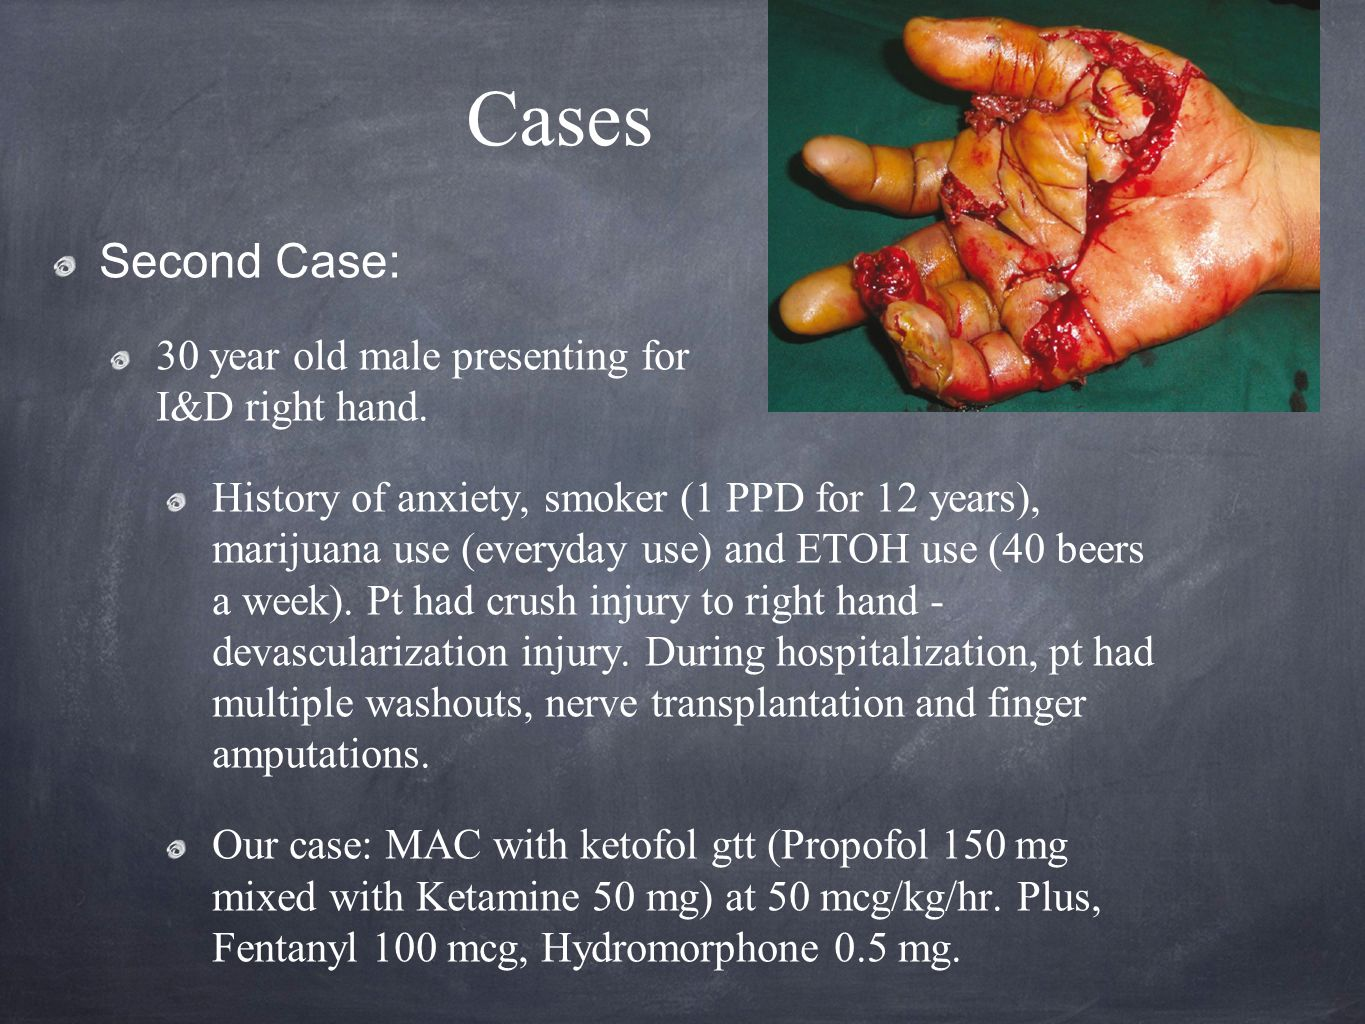 Cases Second Case: 30 year old male presenting for I&D right hand.